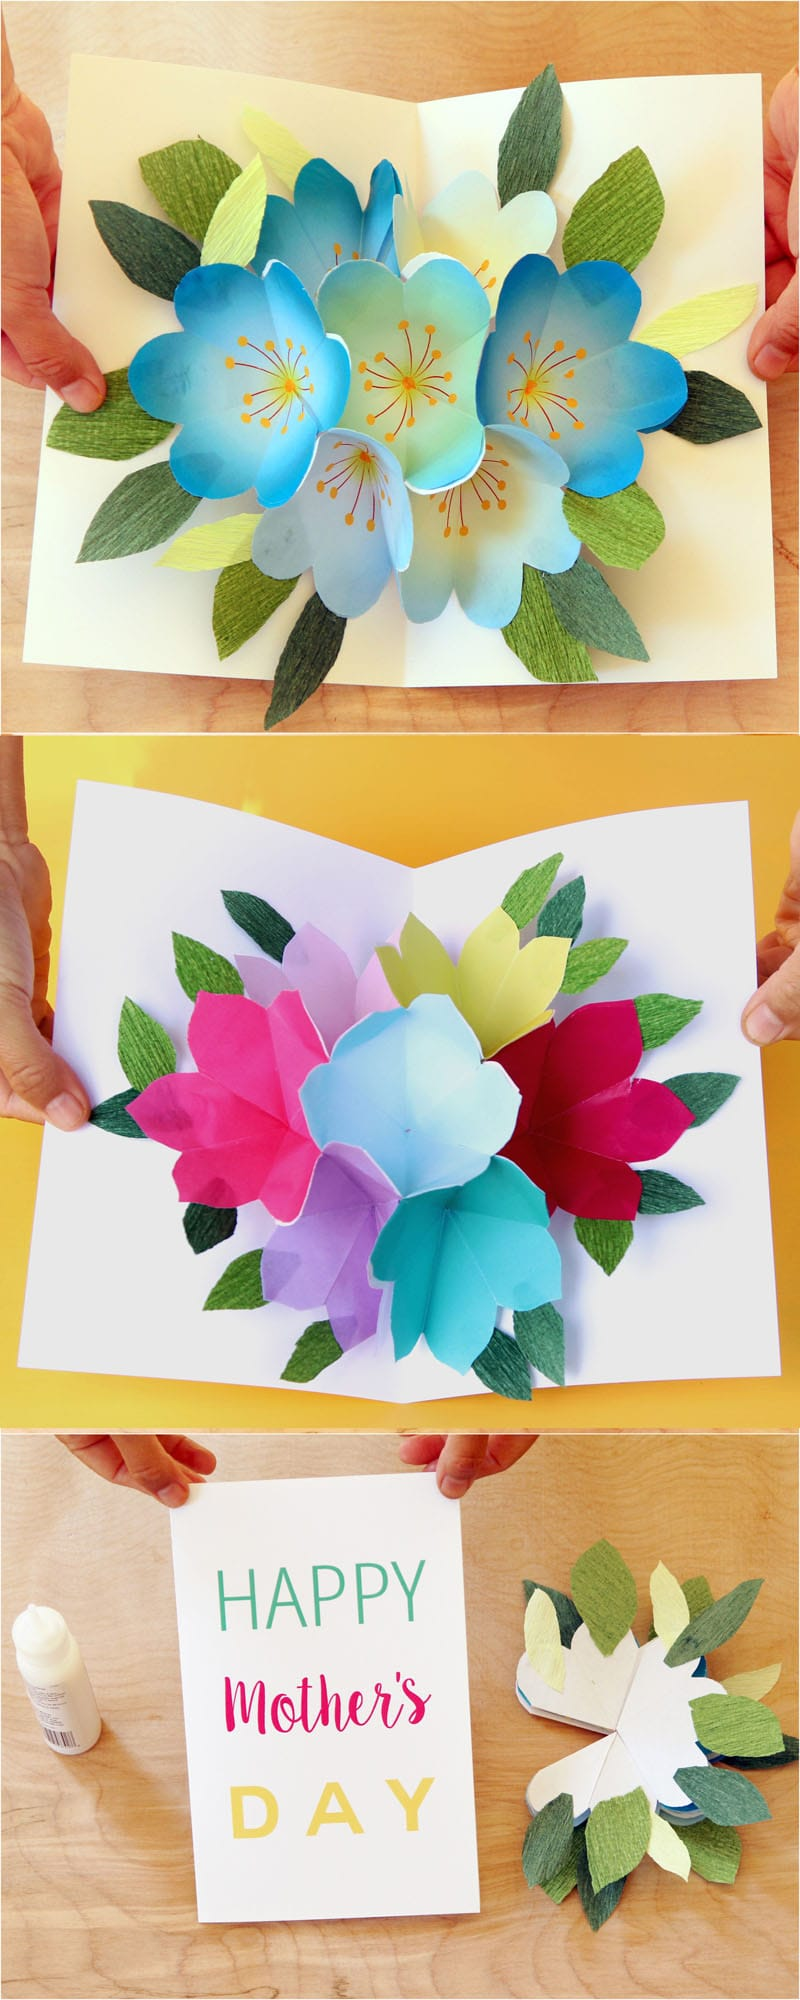 Pop up flowers diy printable mothers day card a piece of rainbow in addition to the free printable mothers day card and the pop up bouquet templates i will also share with you another set of pop up flowers templates with kristyandbryce Images